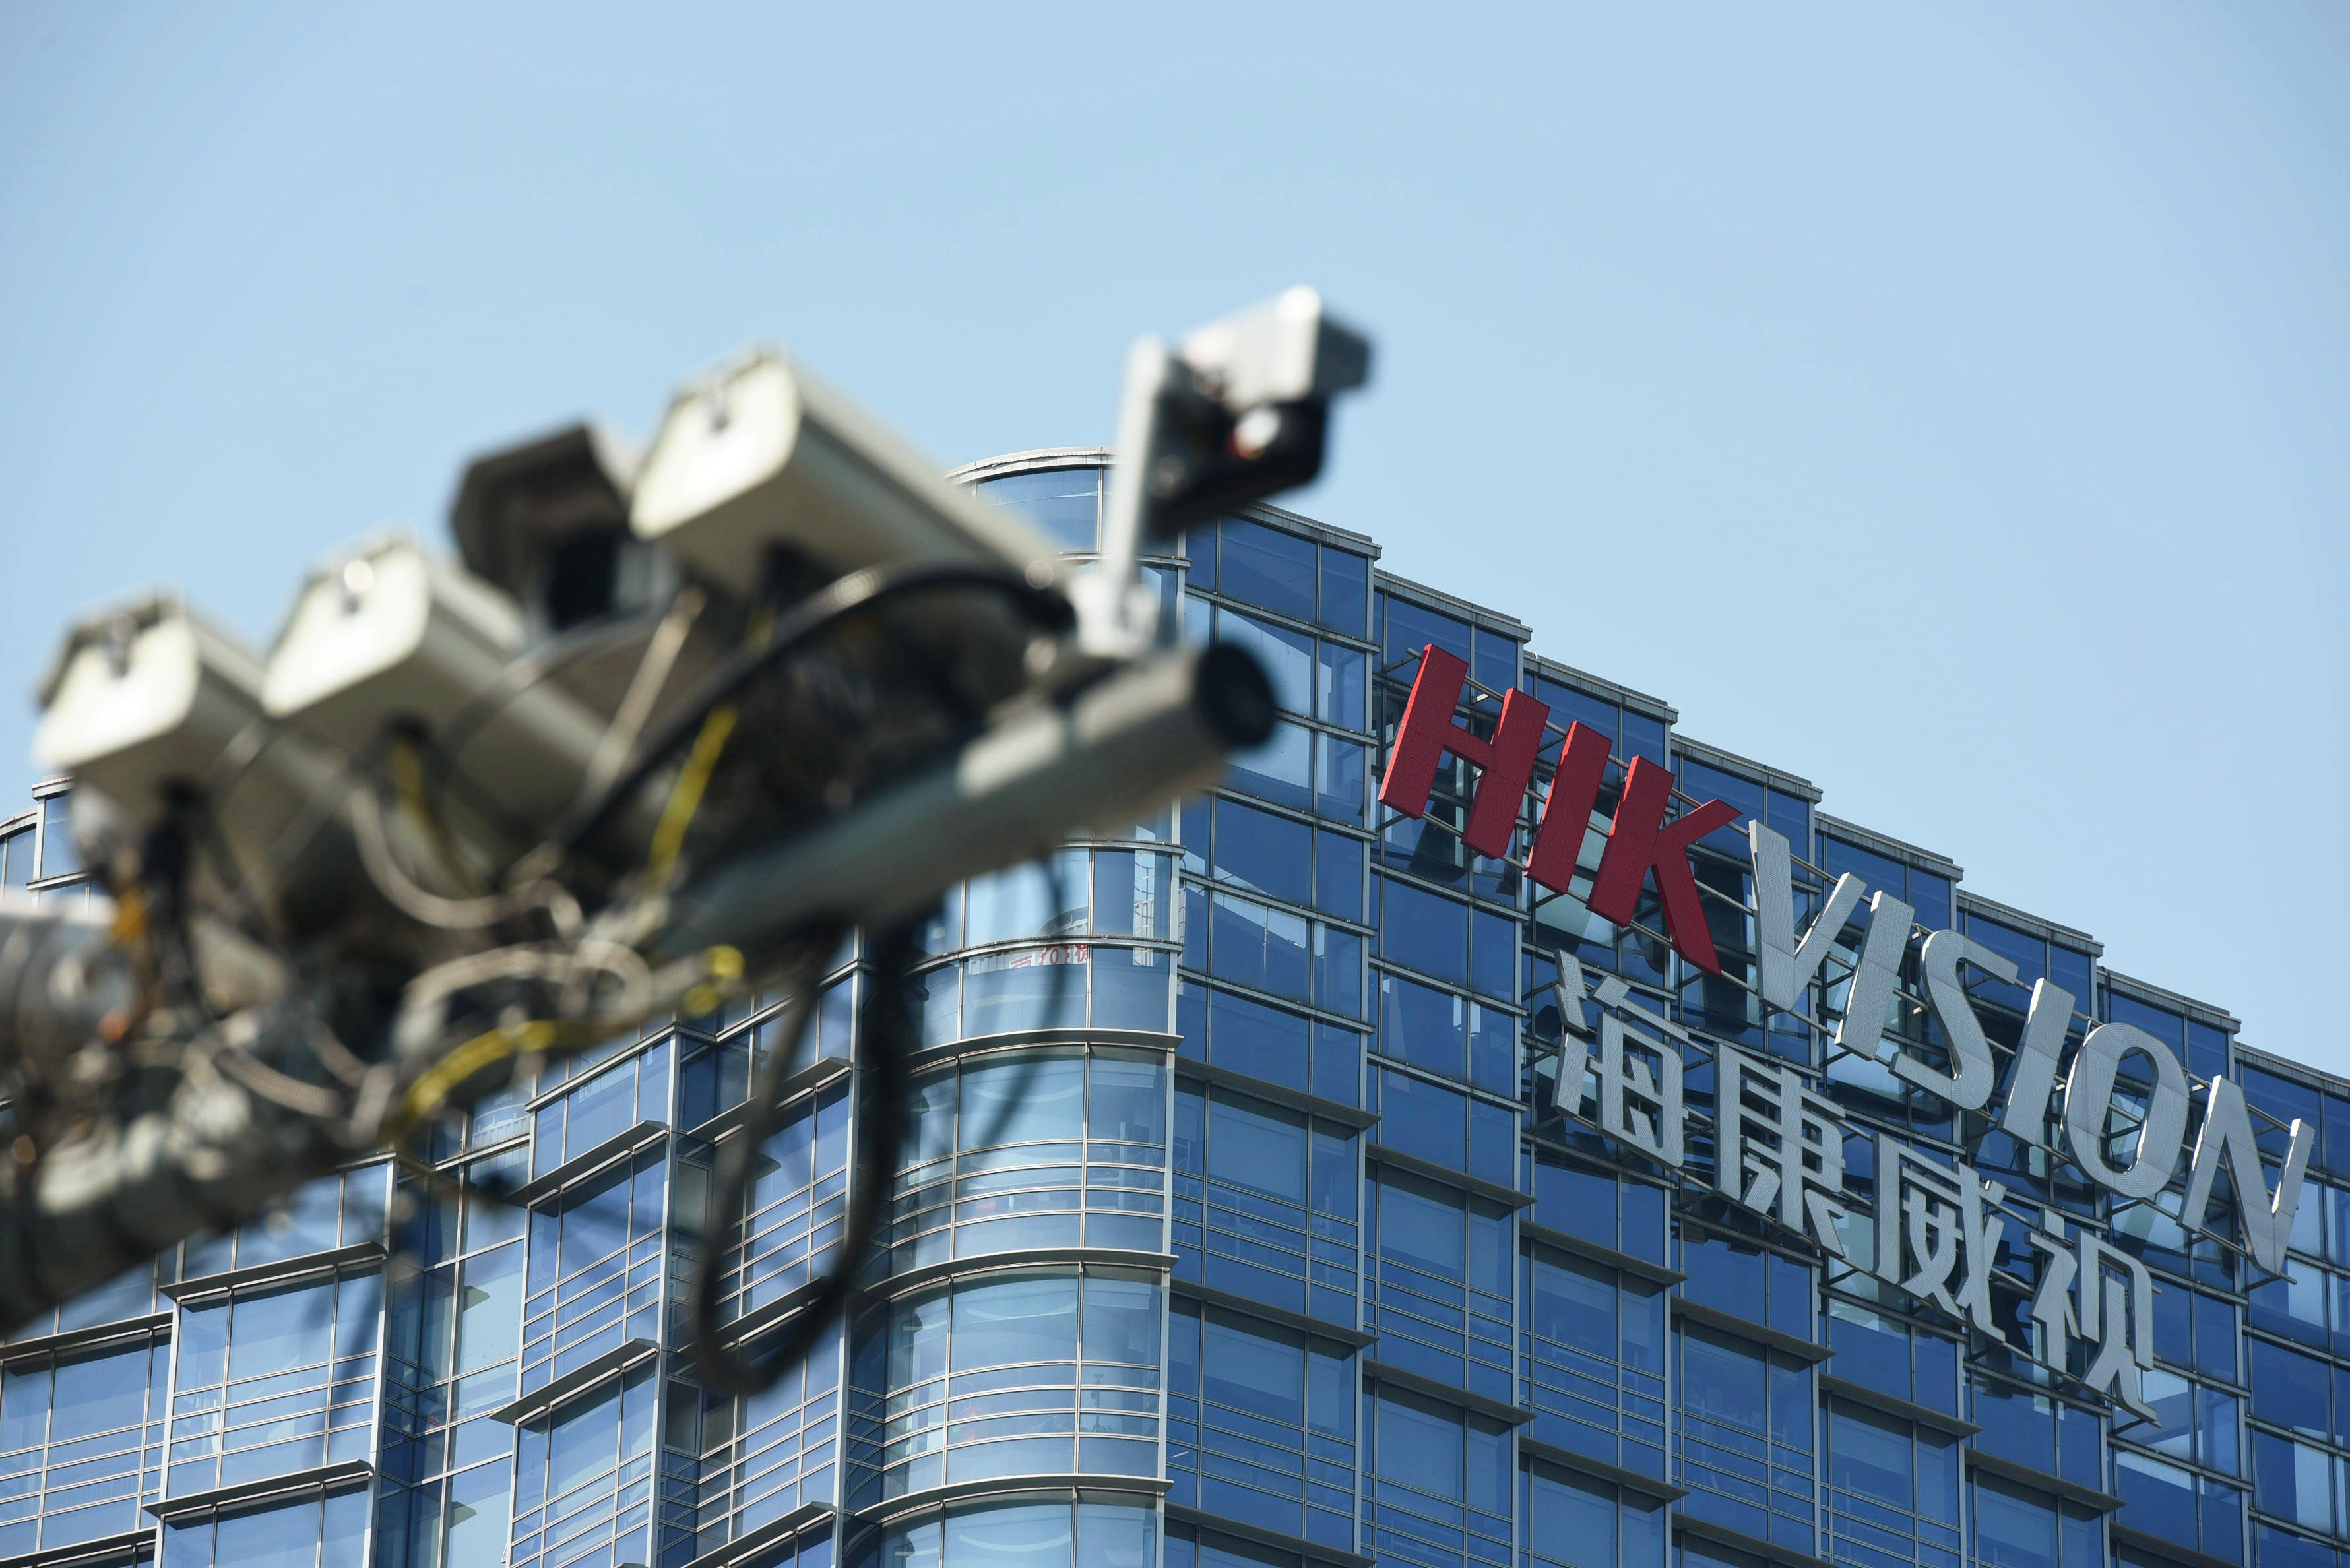 After Huawei, U.S. could blacklist Chinese surveillance tech firm:...